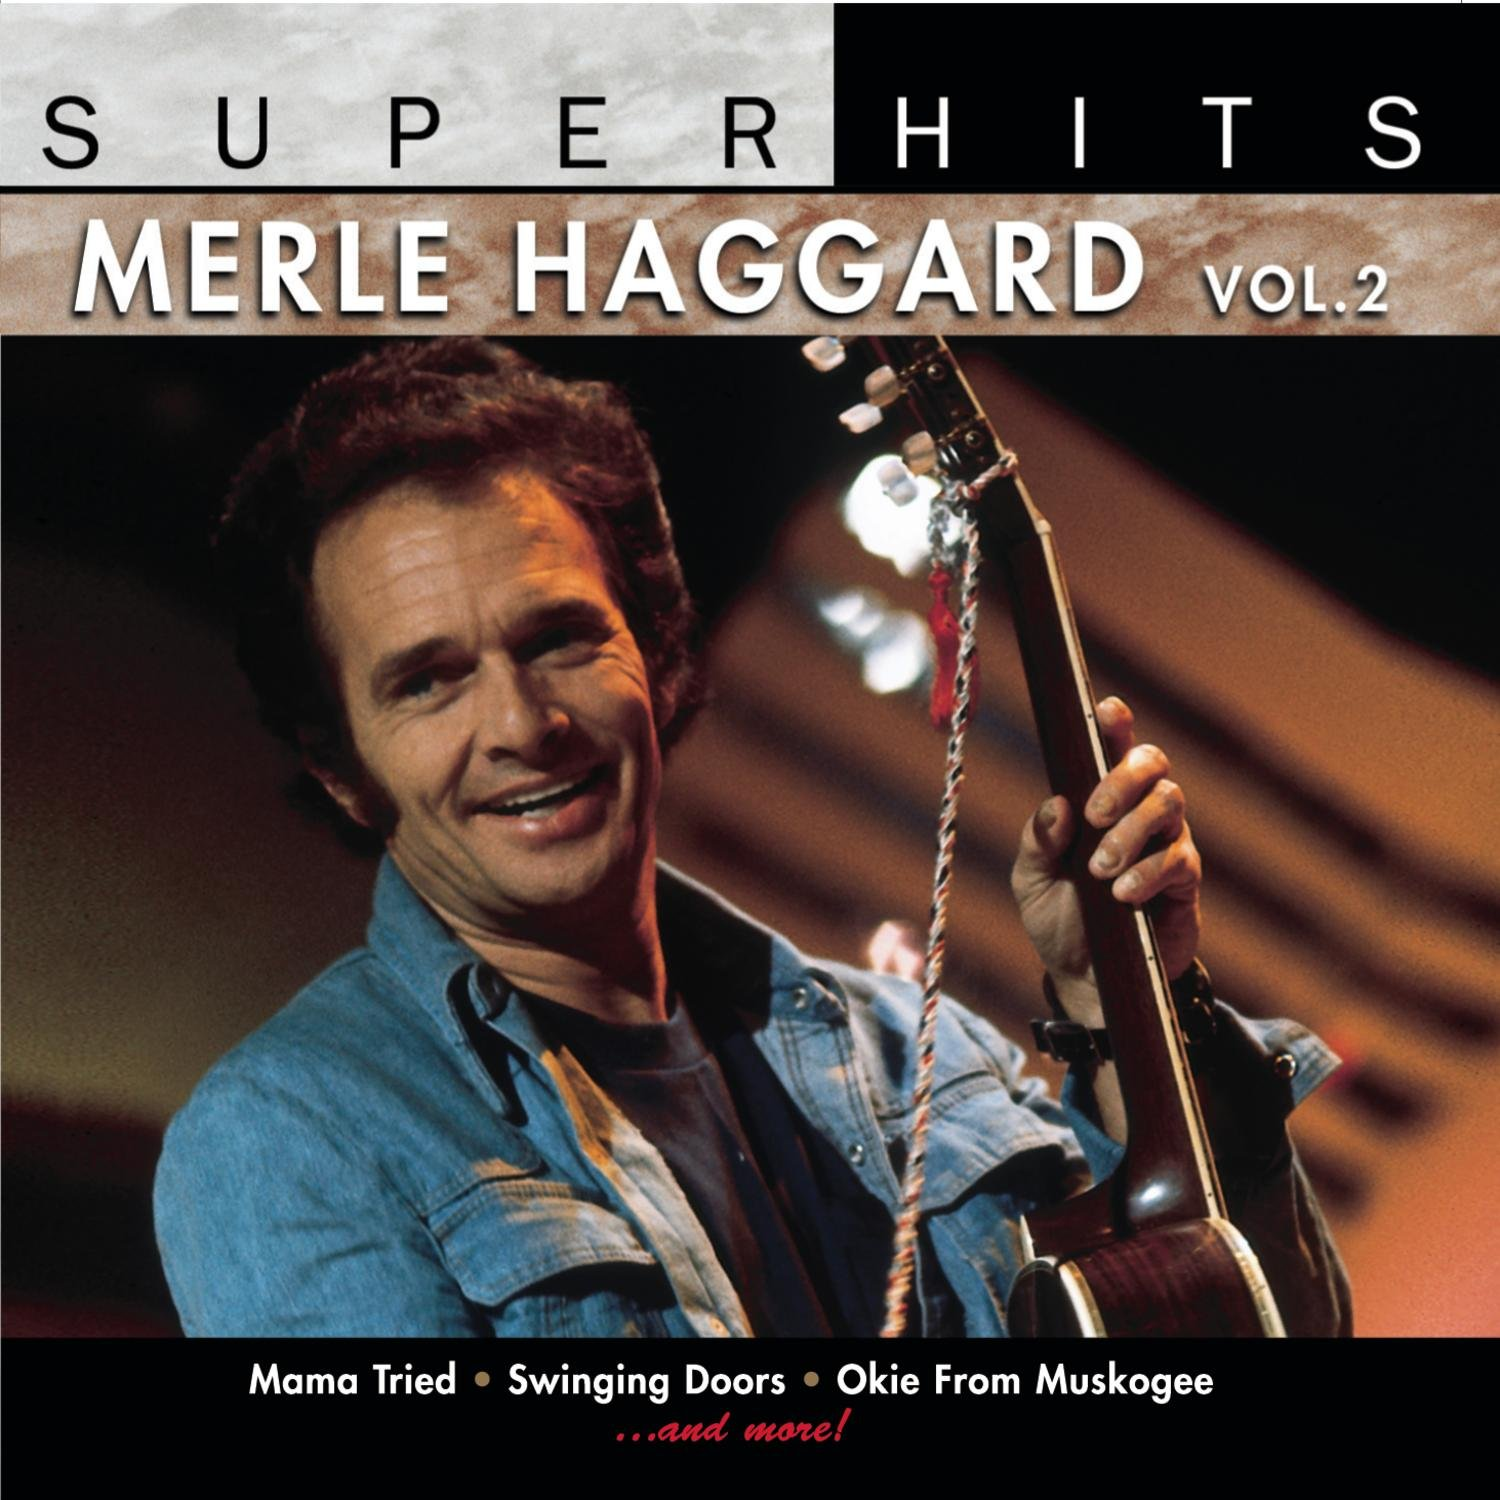 Art for The Fightin' Side Of Me by Merle Haggard